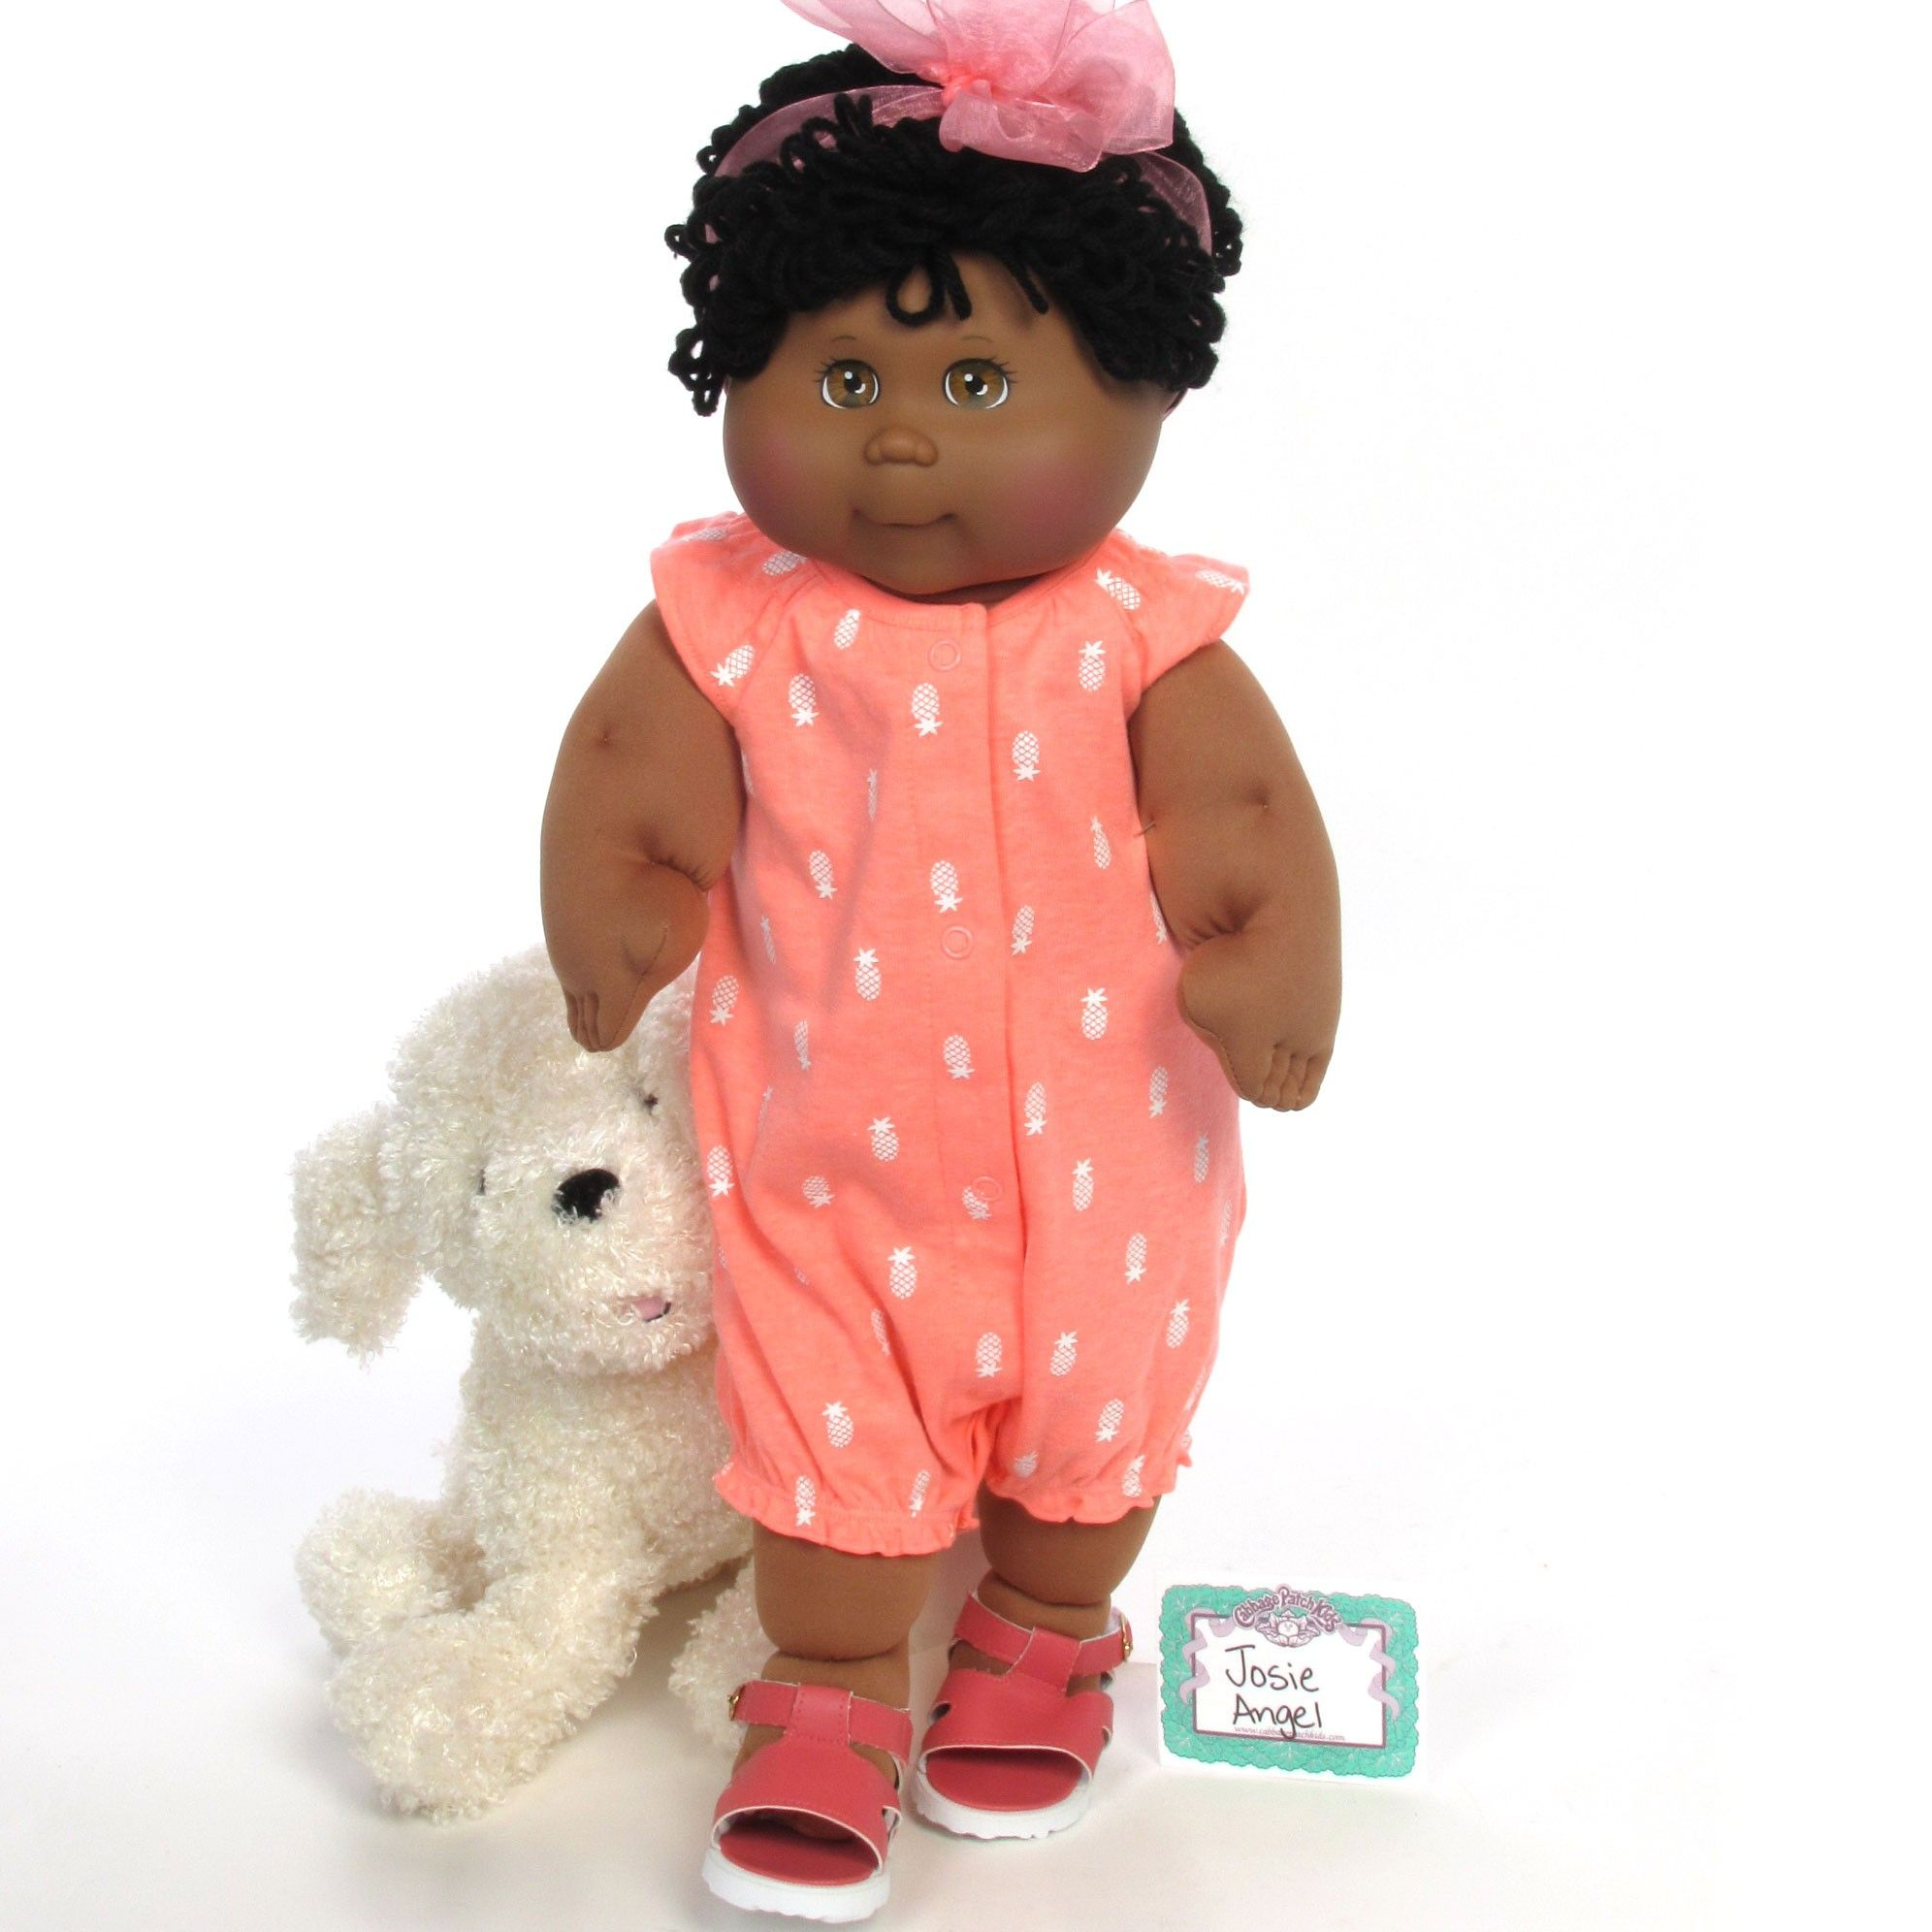 Hippo Baby Cabbage Patch Kids Bathtime Baby Doll